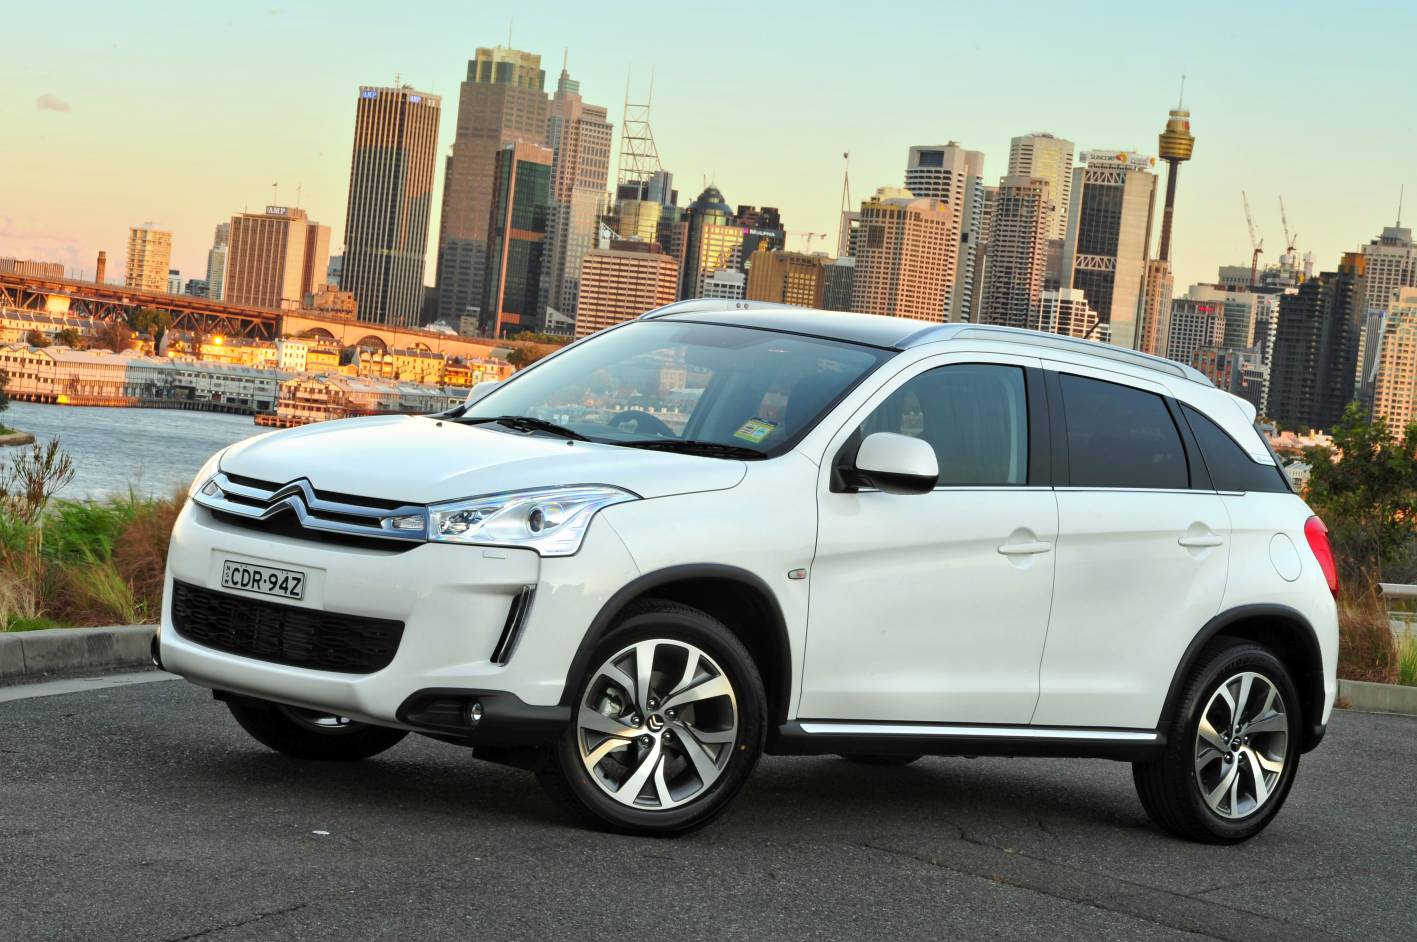 Citroen Cars News C4 Aircross Awd Added To Lineup Transmission Diagrams Citron